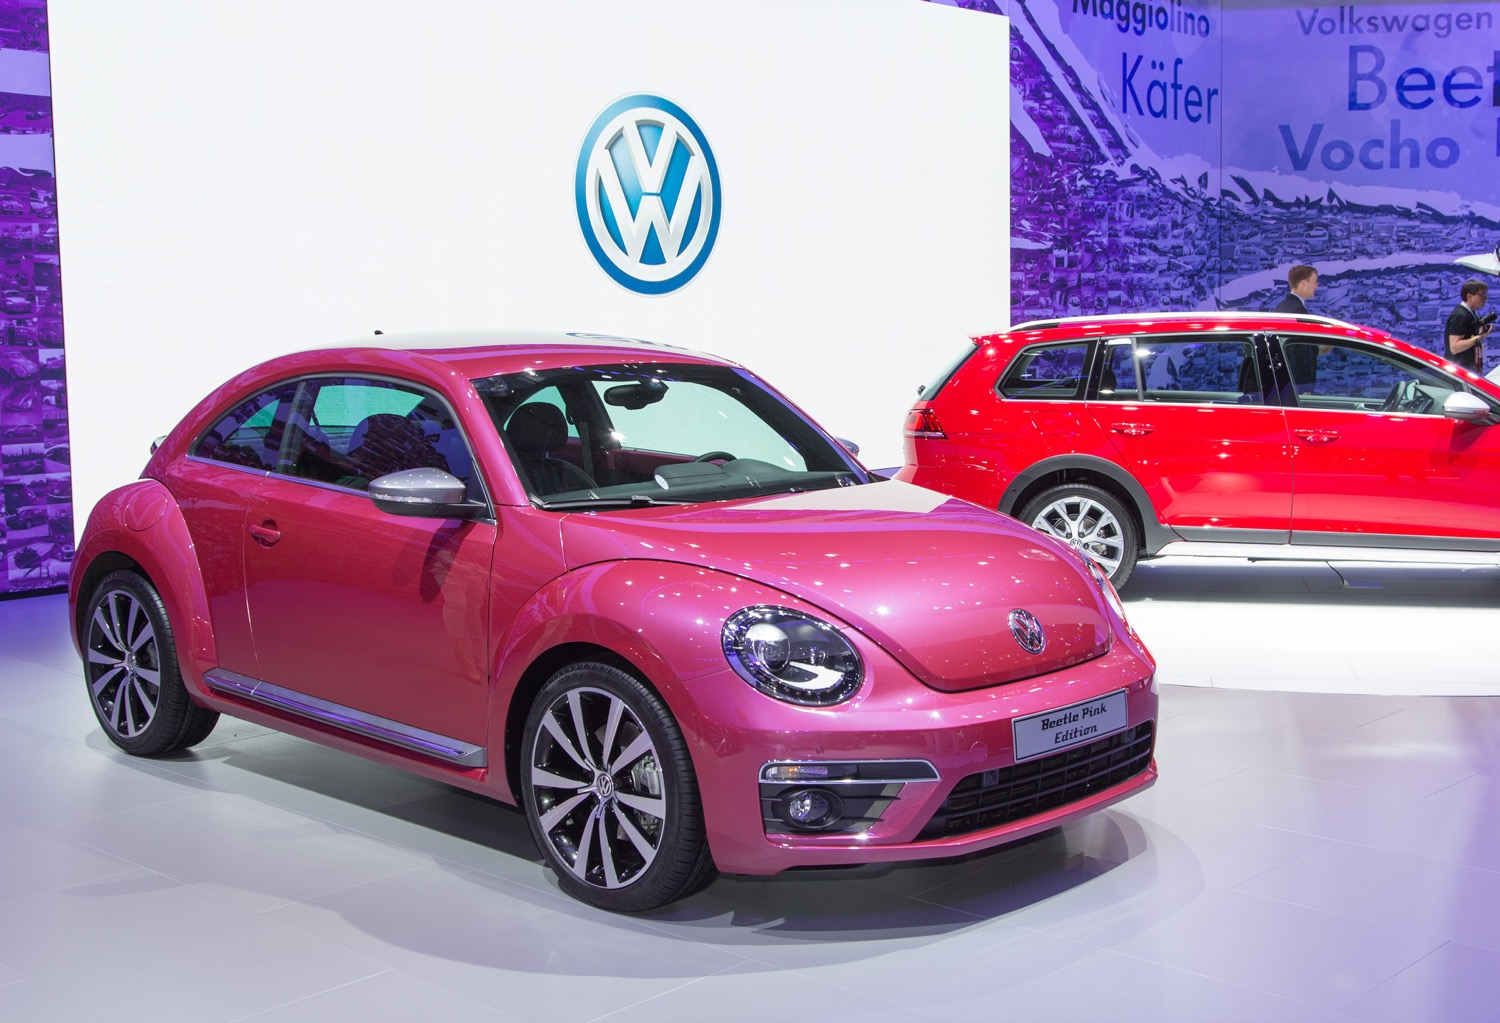 volkswagen beetle 2015 colors. volkswagen beetle pink color edition concept 02 new york international auto show 2015 colors v